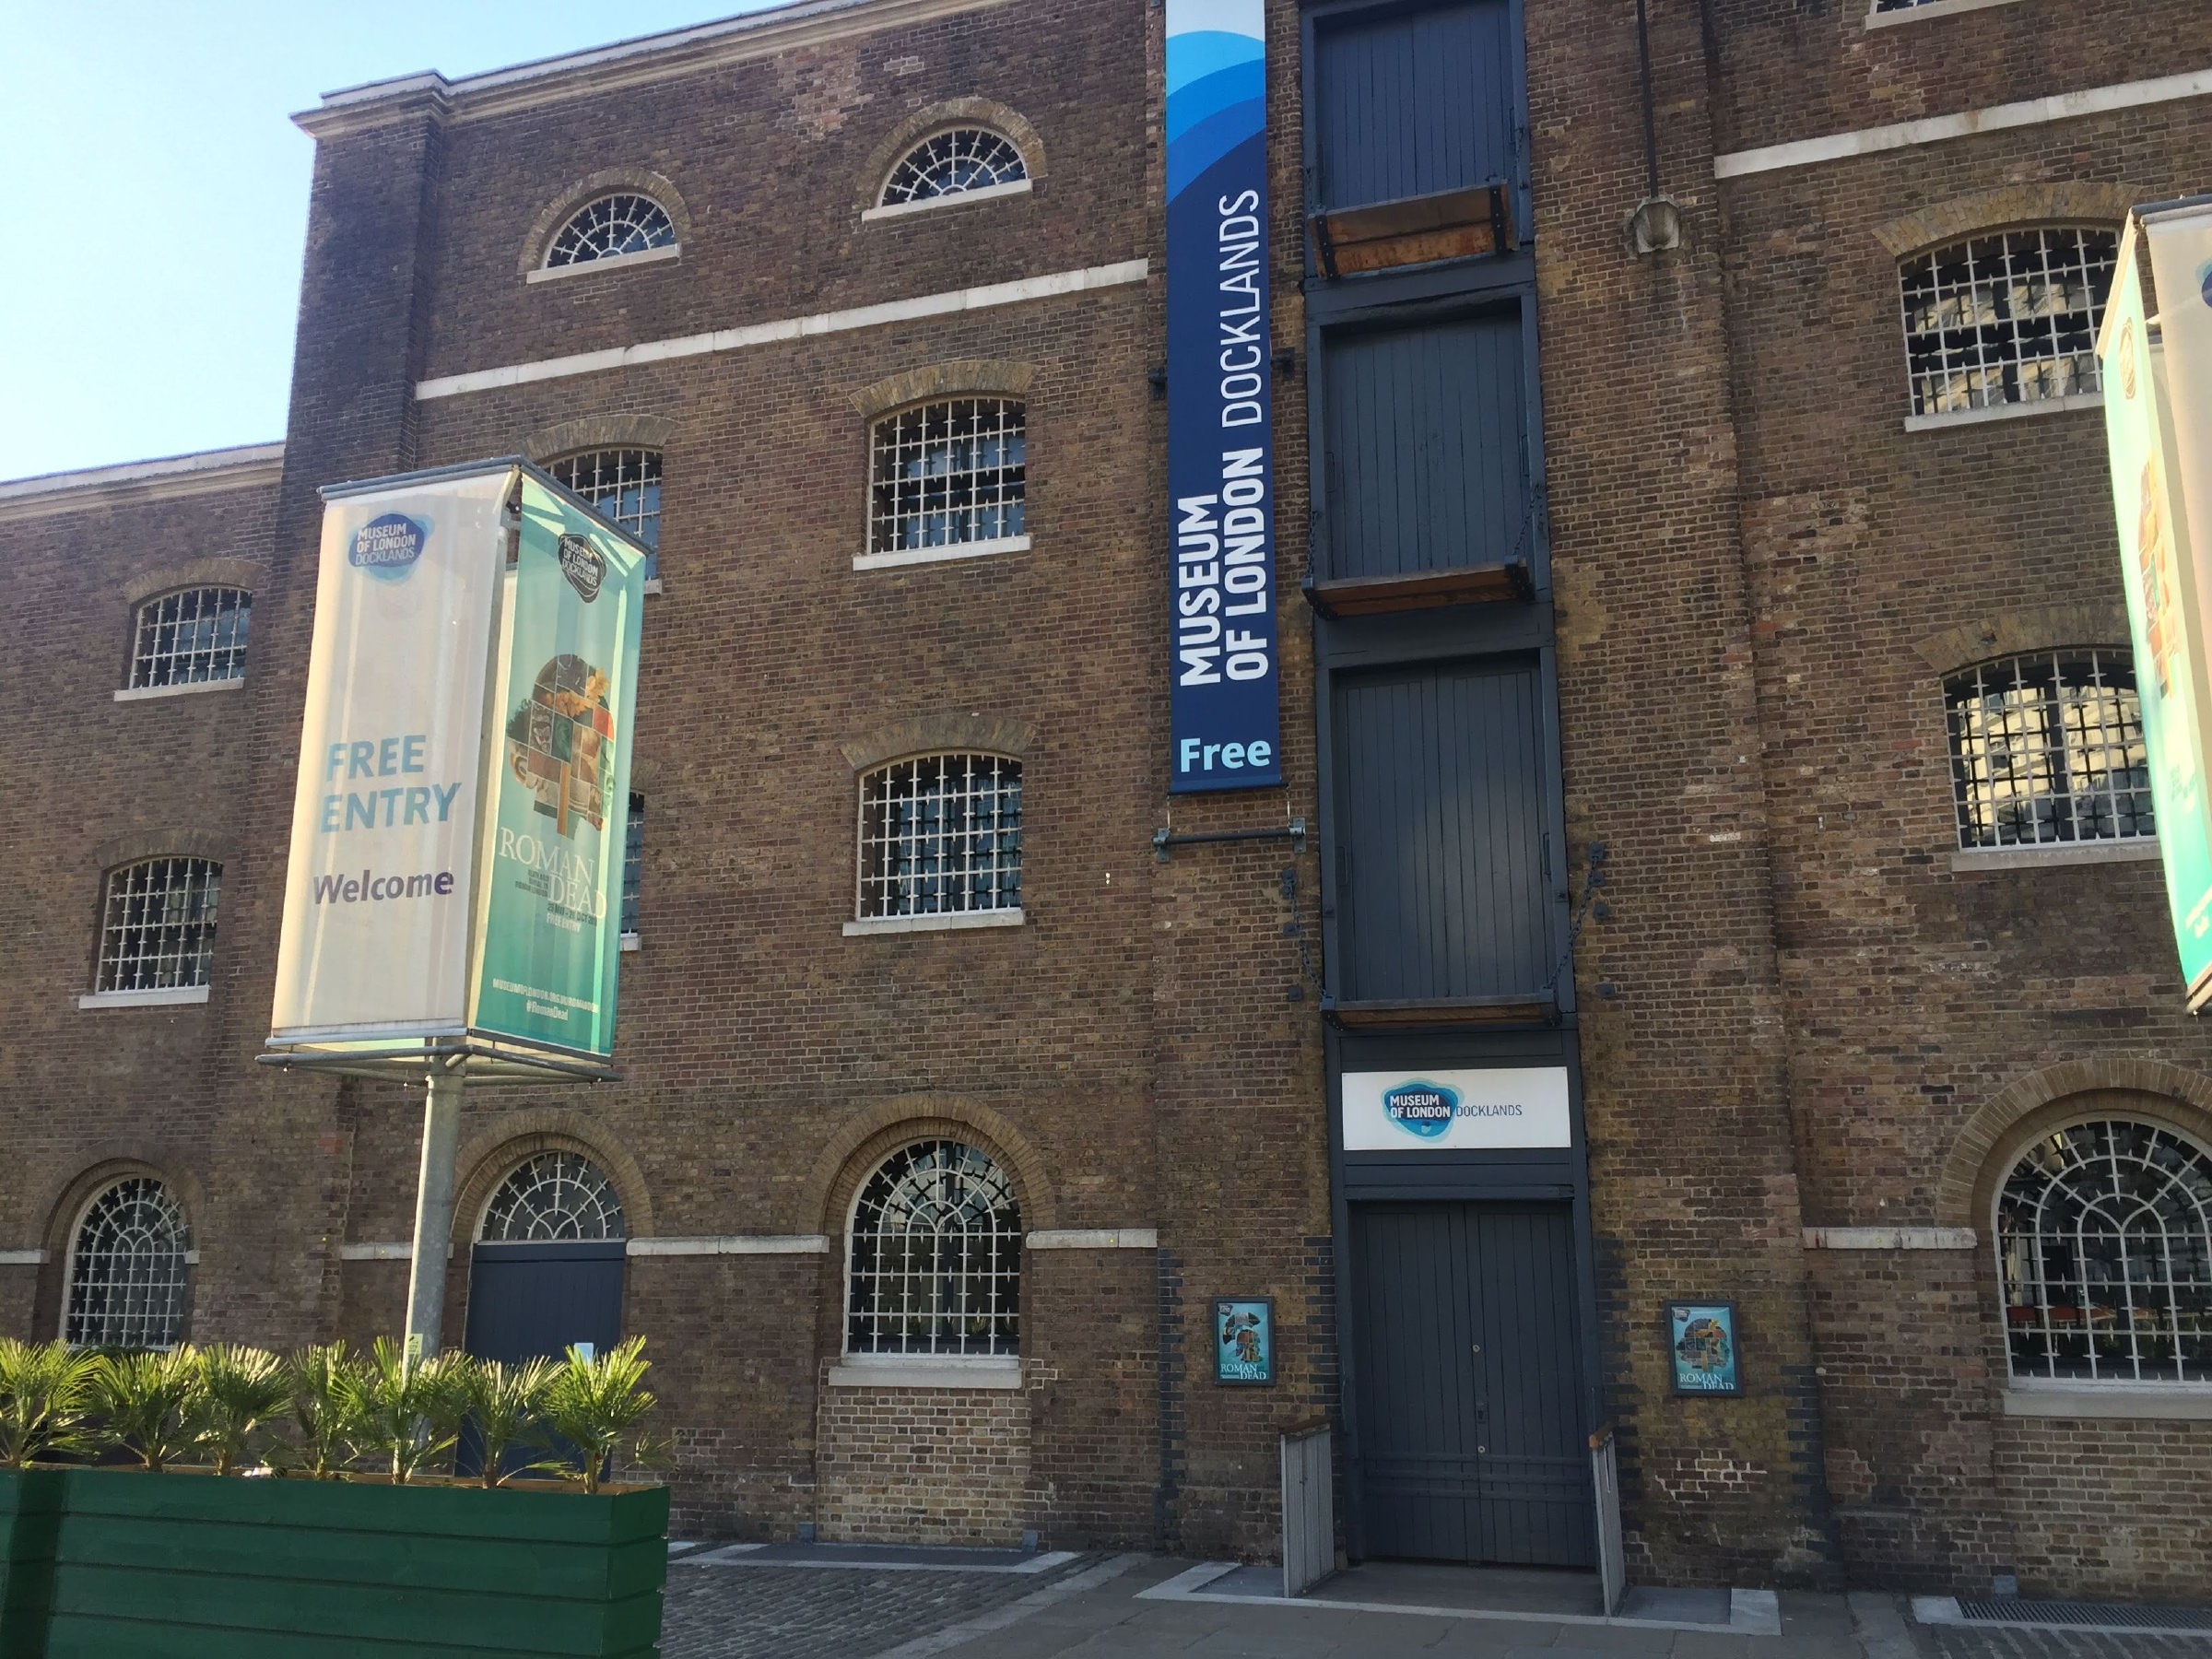 D Exhibition Docklands : Museum of london docklands london england attractions lonely planet